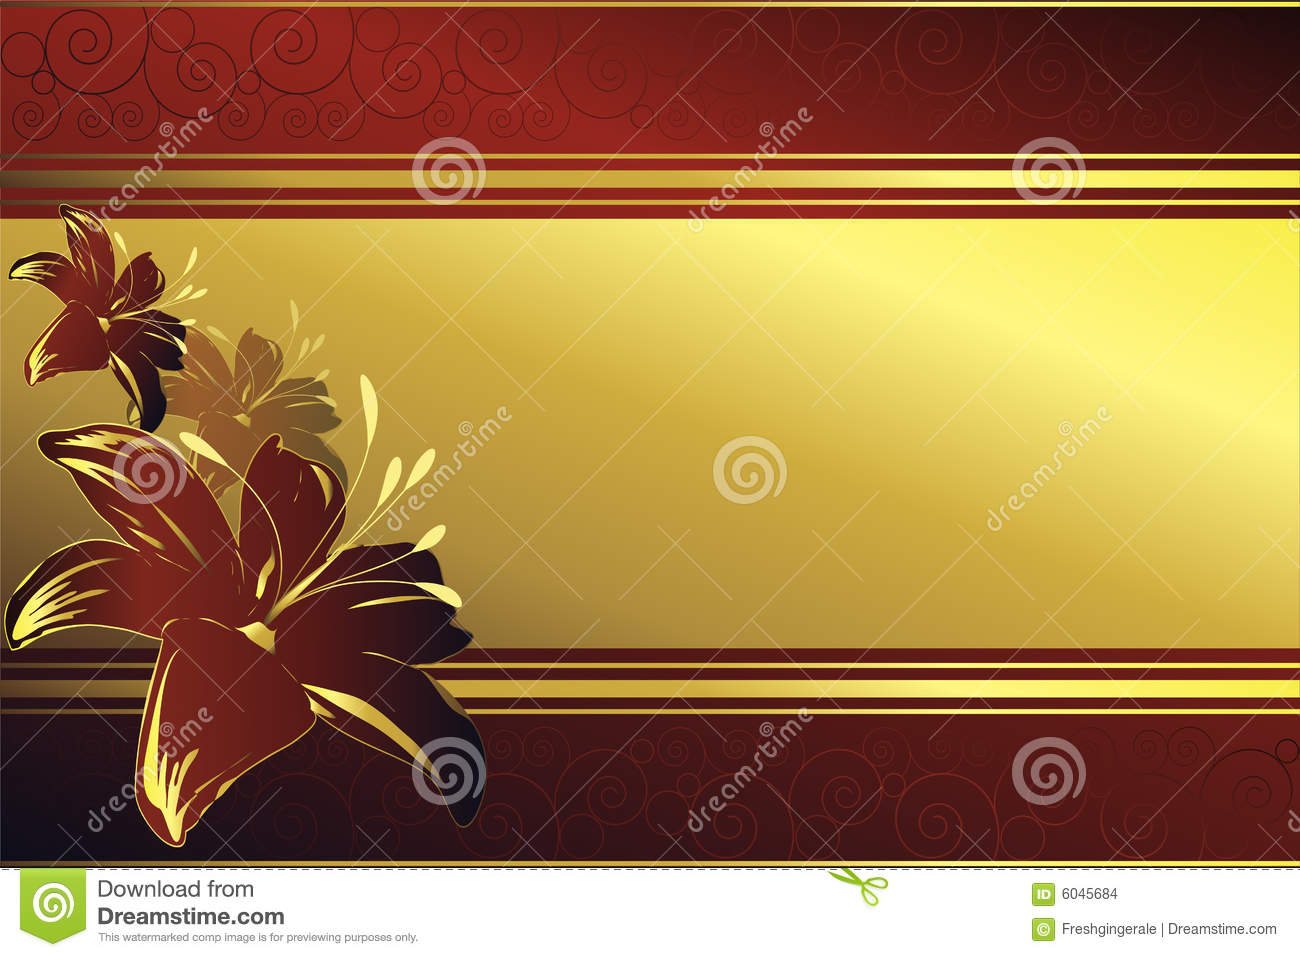 Golden frame with red blossoms